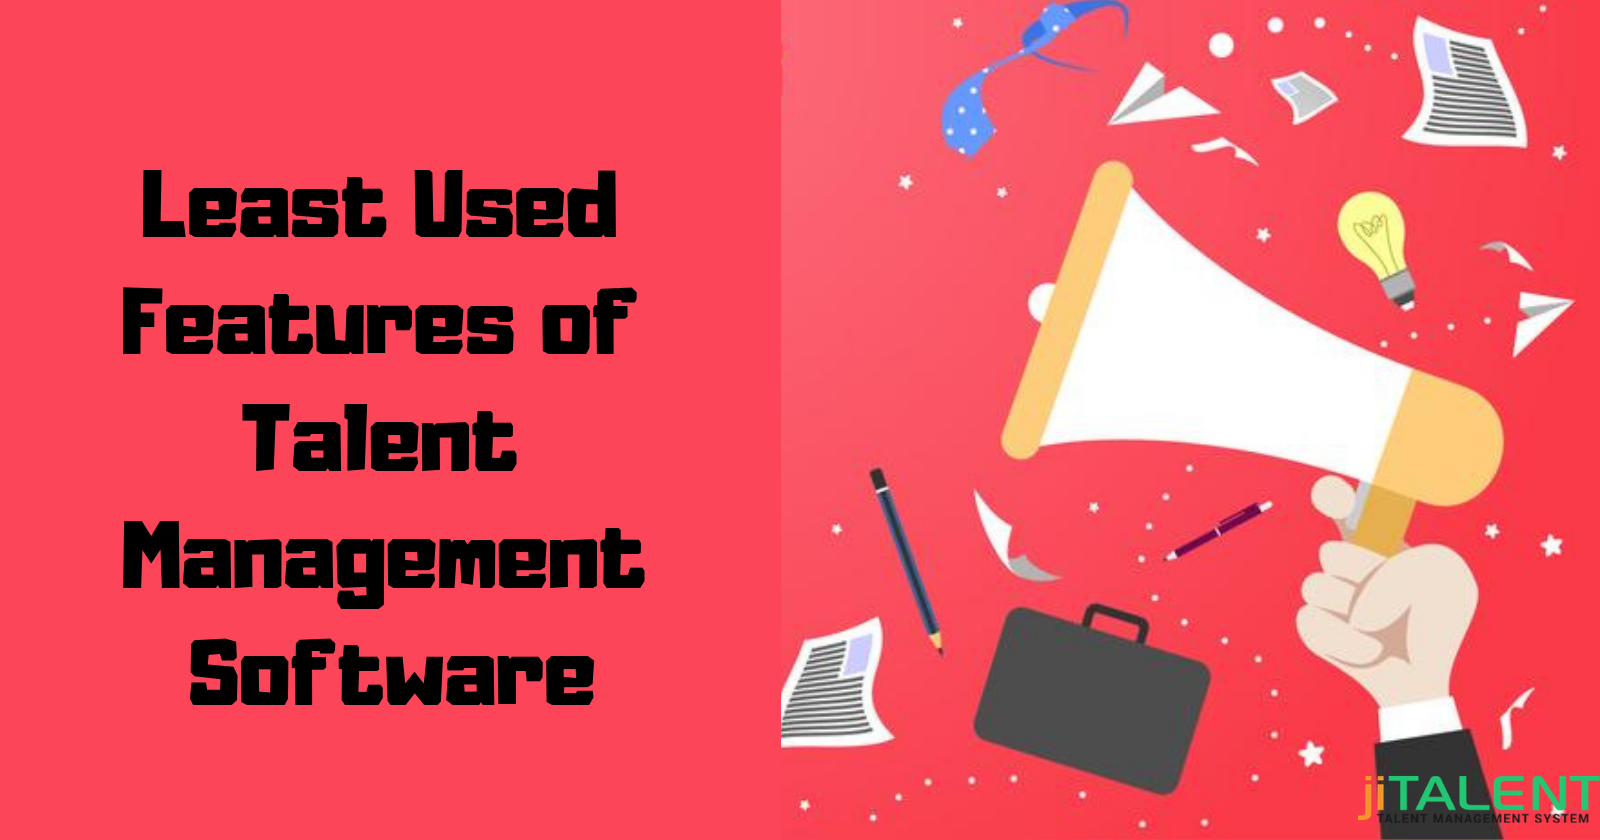 Least Used Features of Talent Management Software